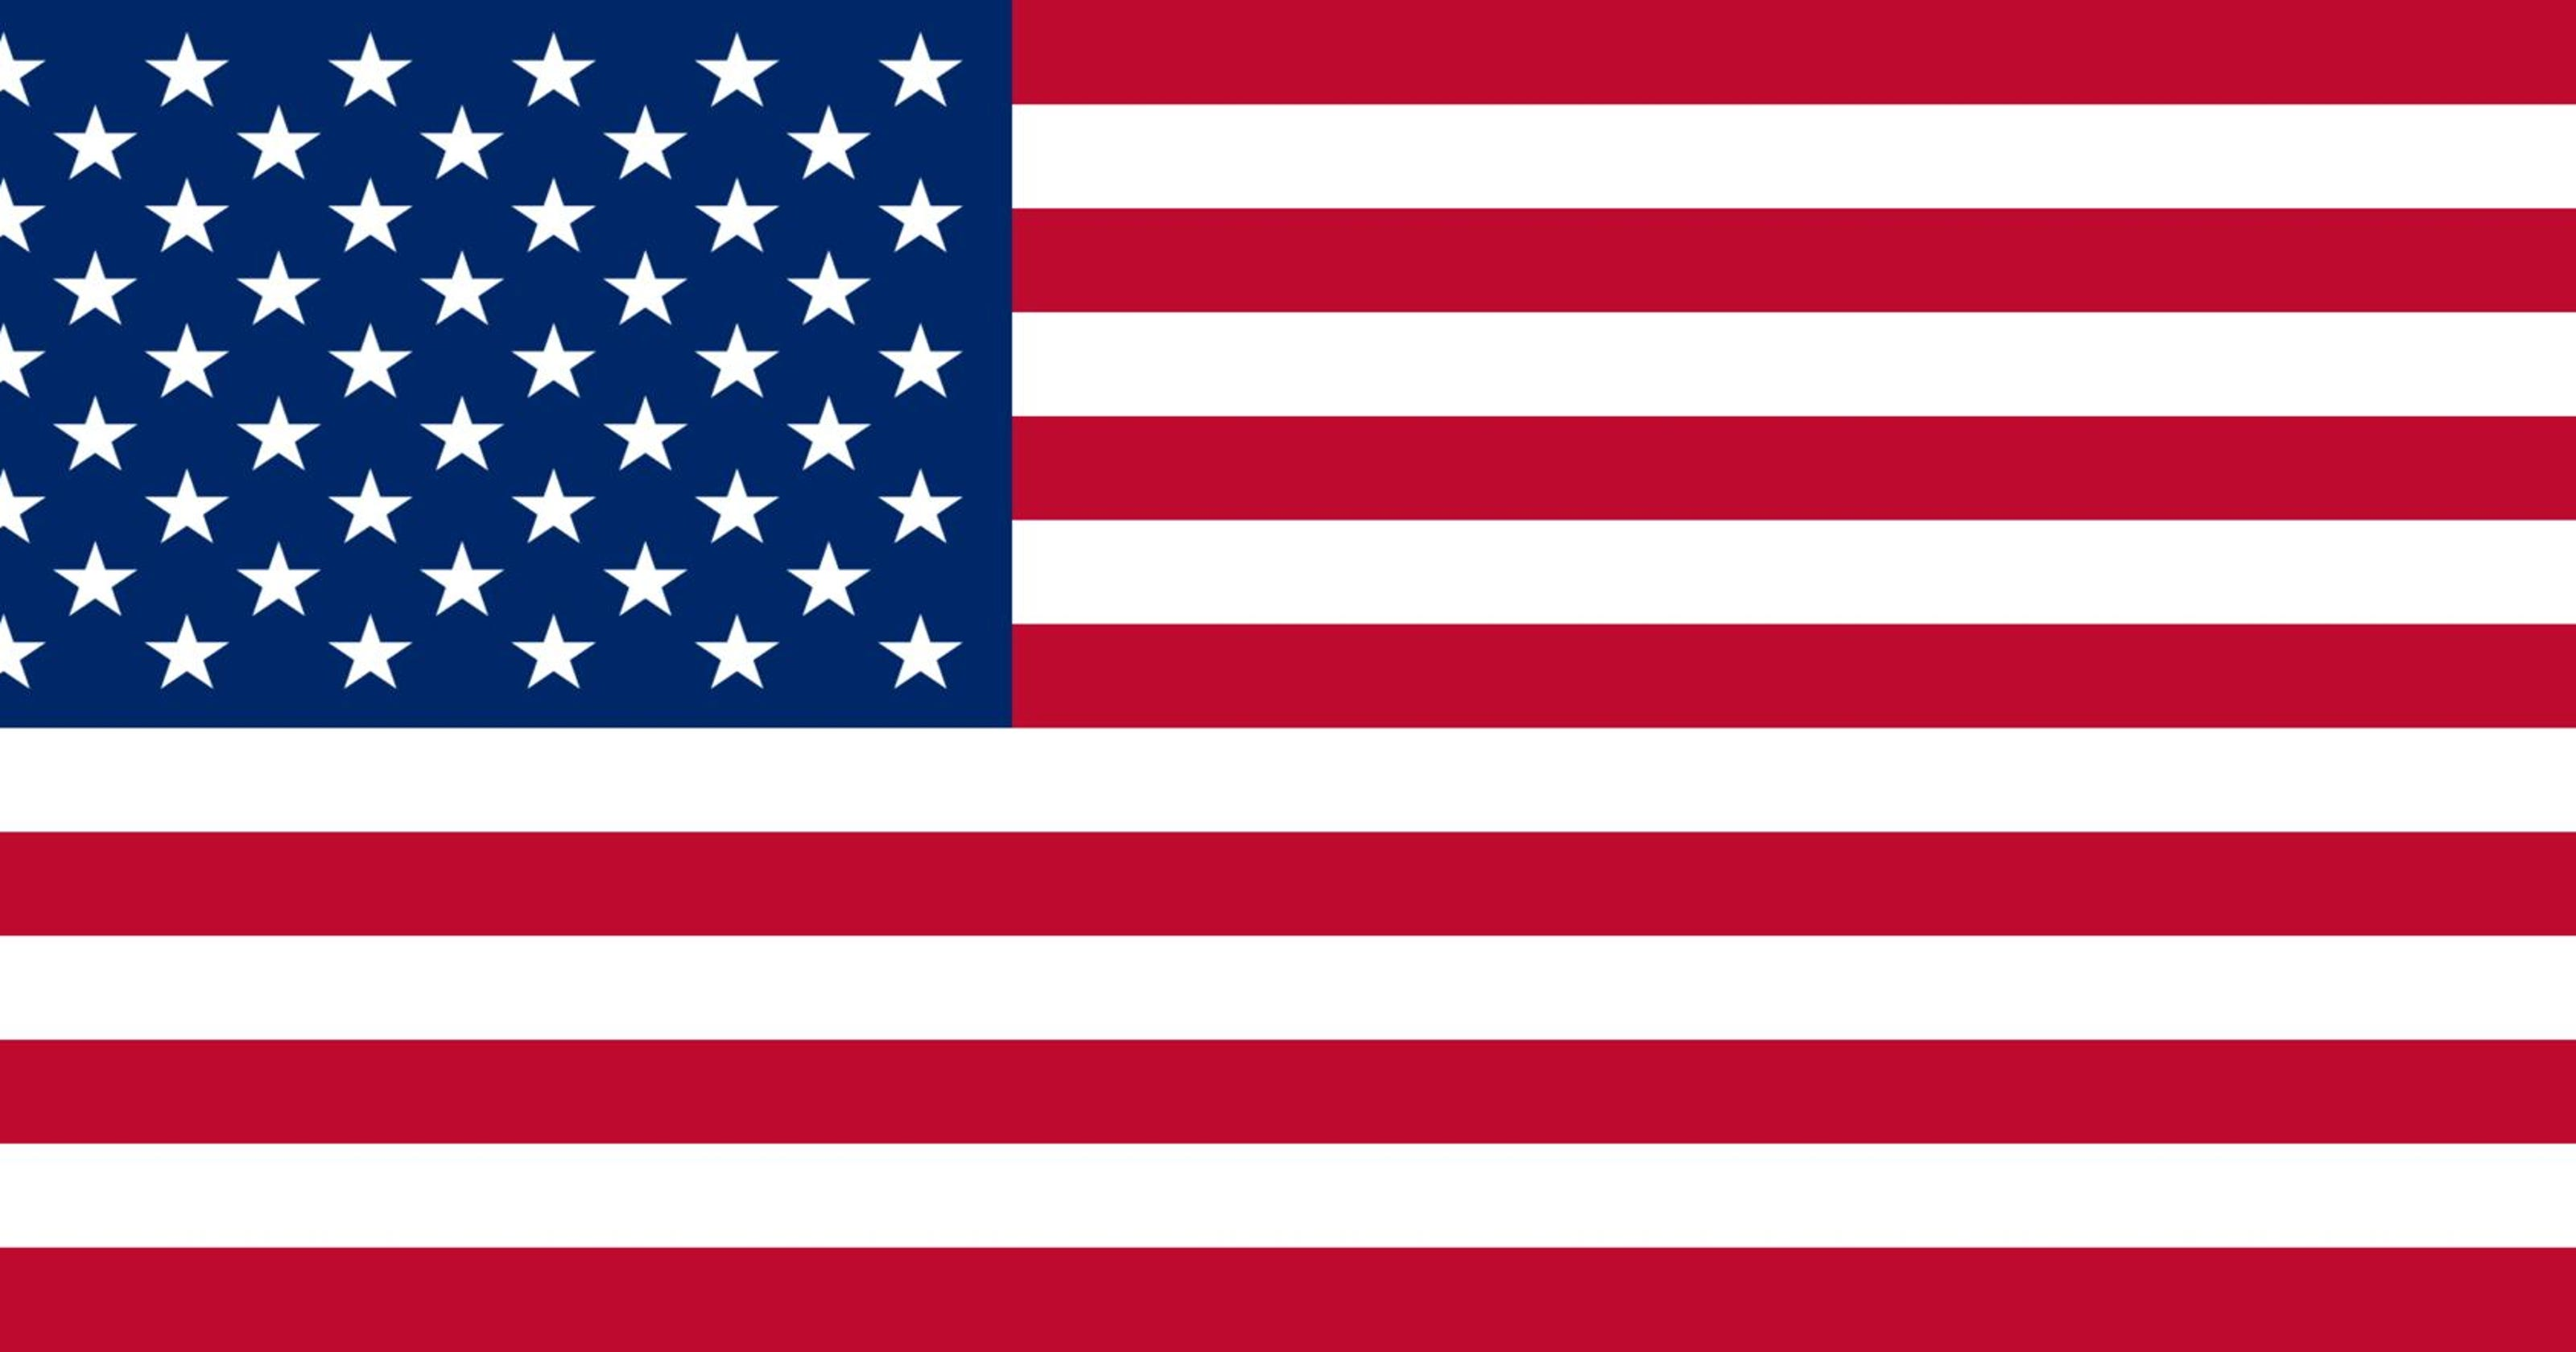 Flag Symbolism Remains An Important Unifying Force